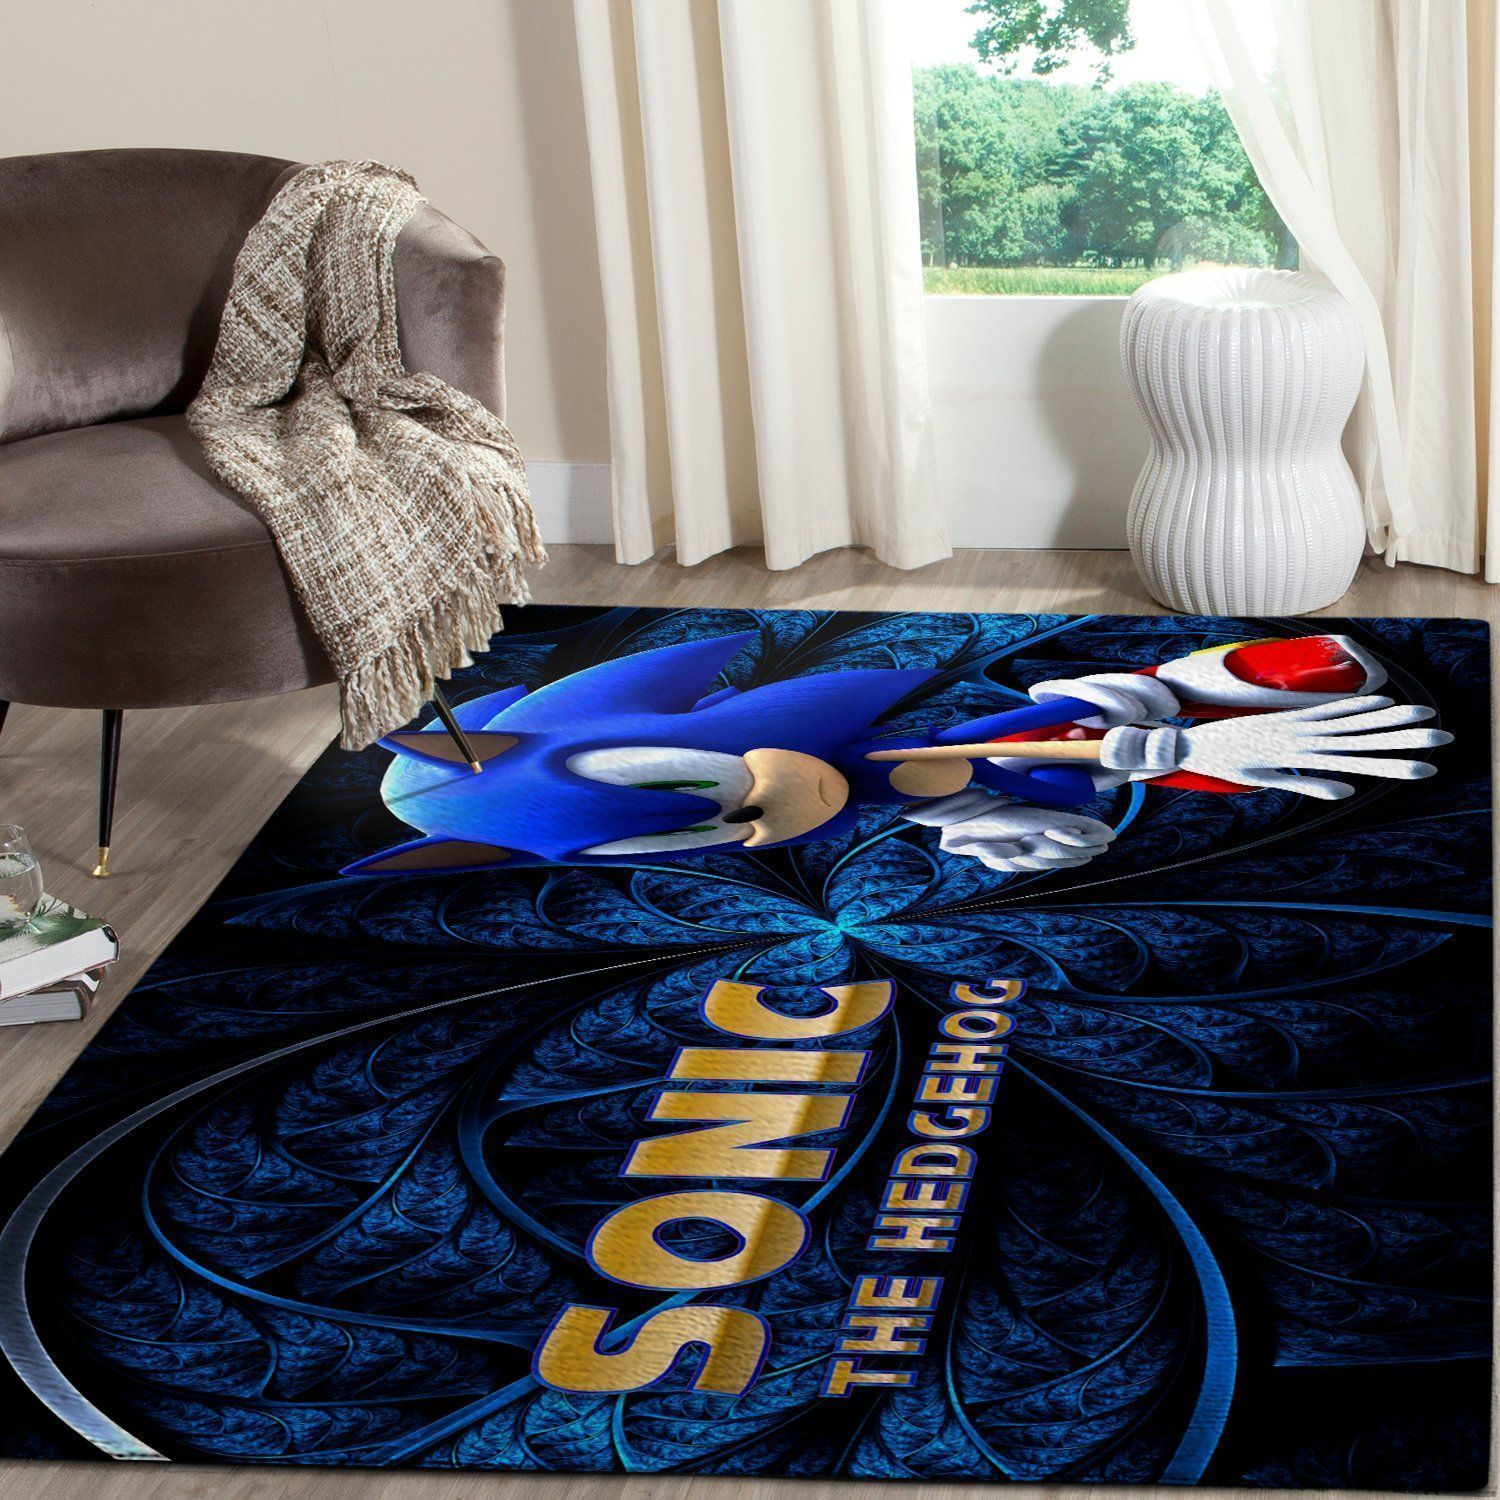 Sonic the Hedgehog Area Rug / Gaming Carpet, Gamer Living Room Rugs, Floor Decor 10117